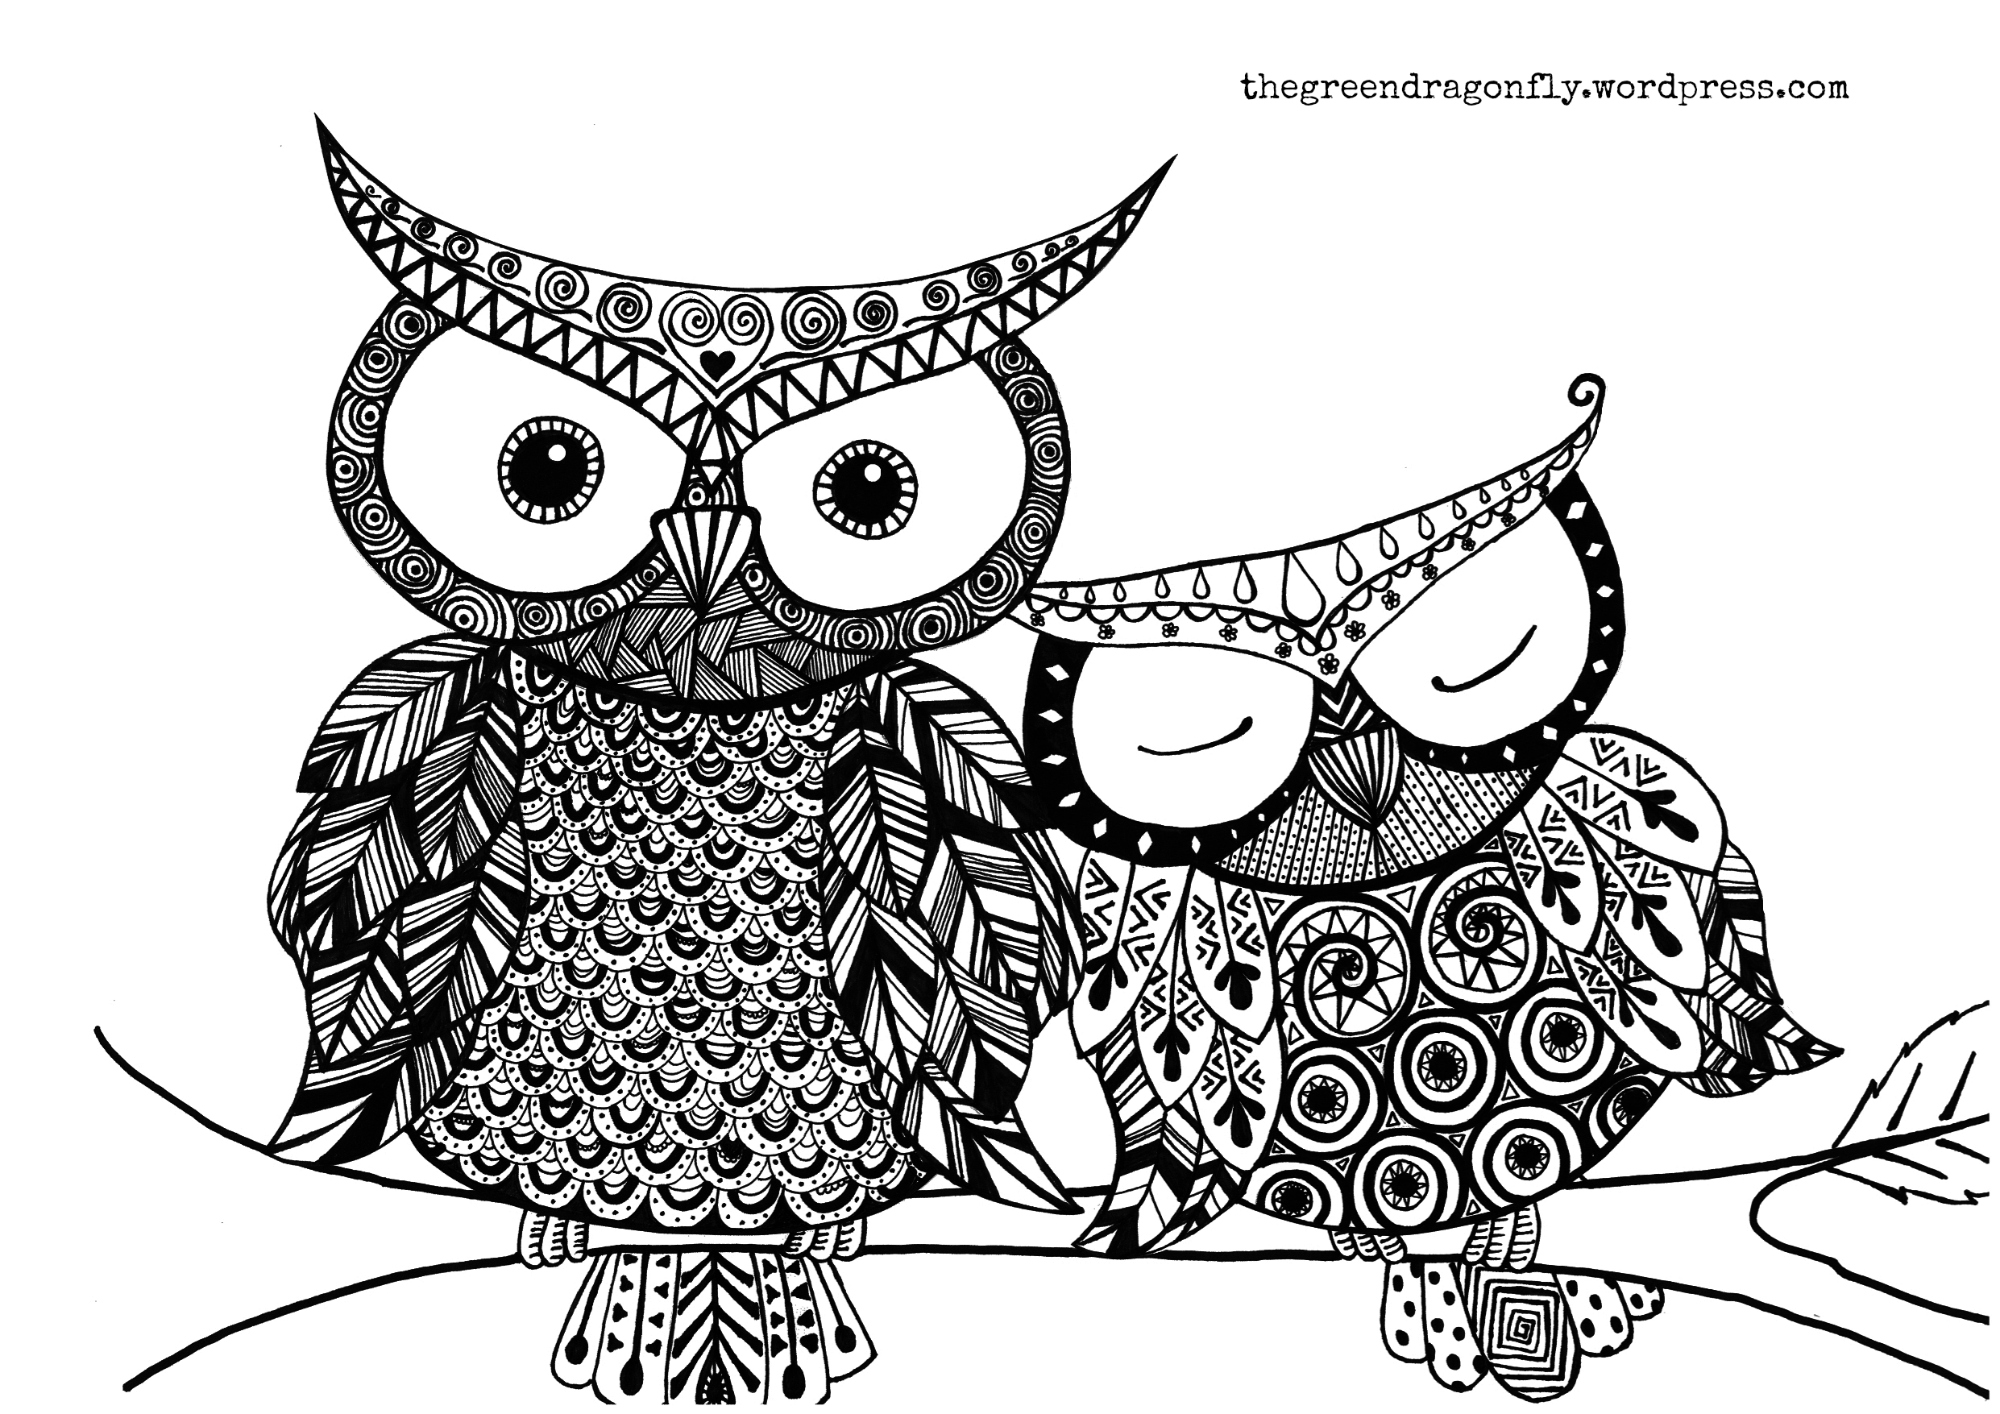 picture of owls to color girl owl coloring pages get coloring pages owls to picture color of